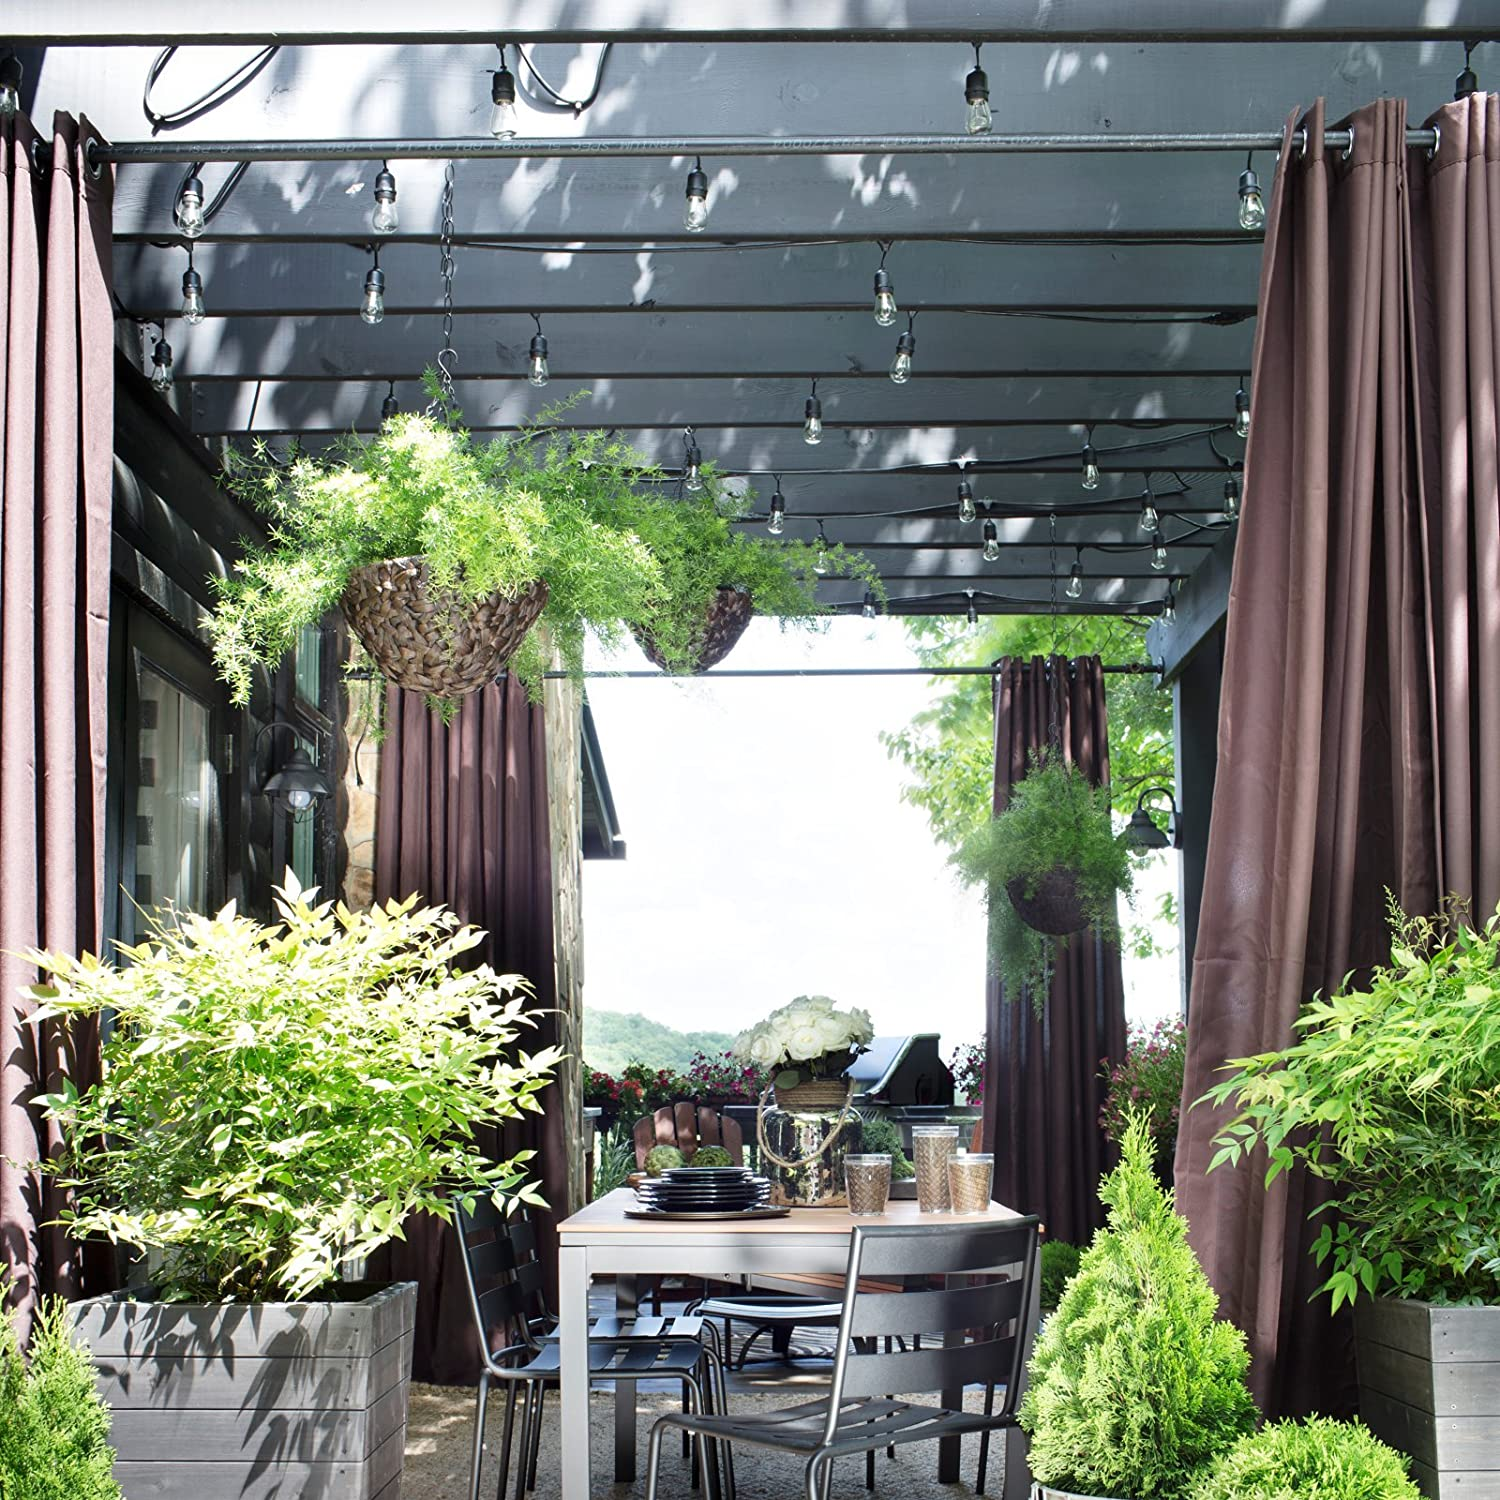 ikea curtains curtain patio pergola patrofi at co veloclub outdoor